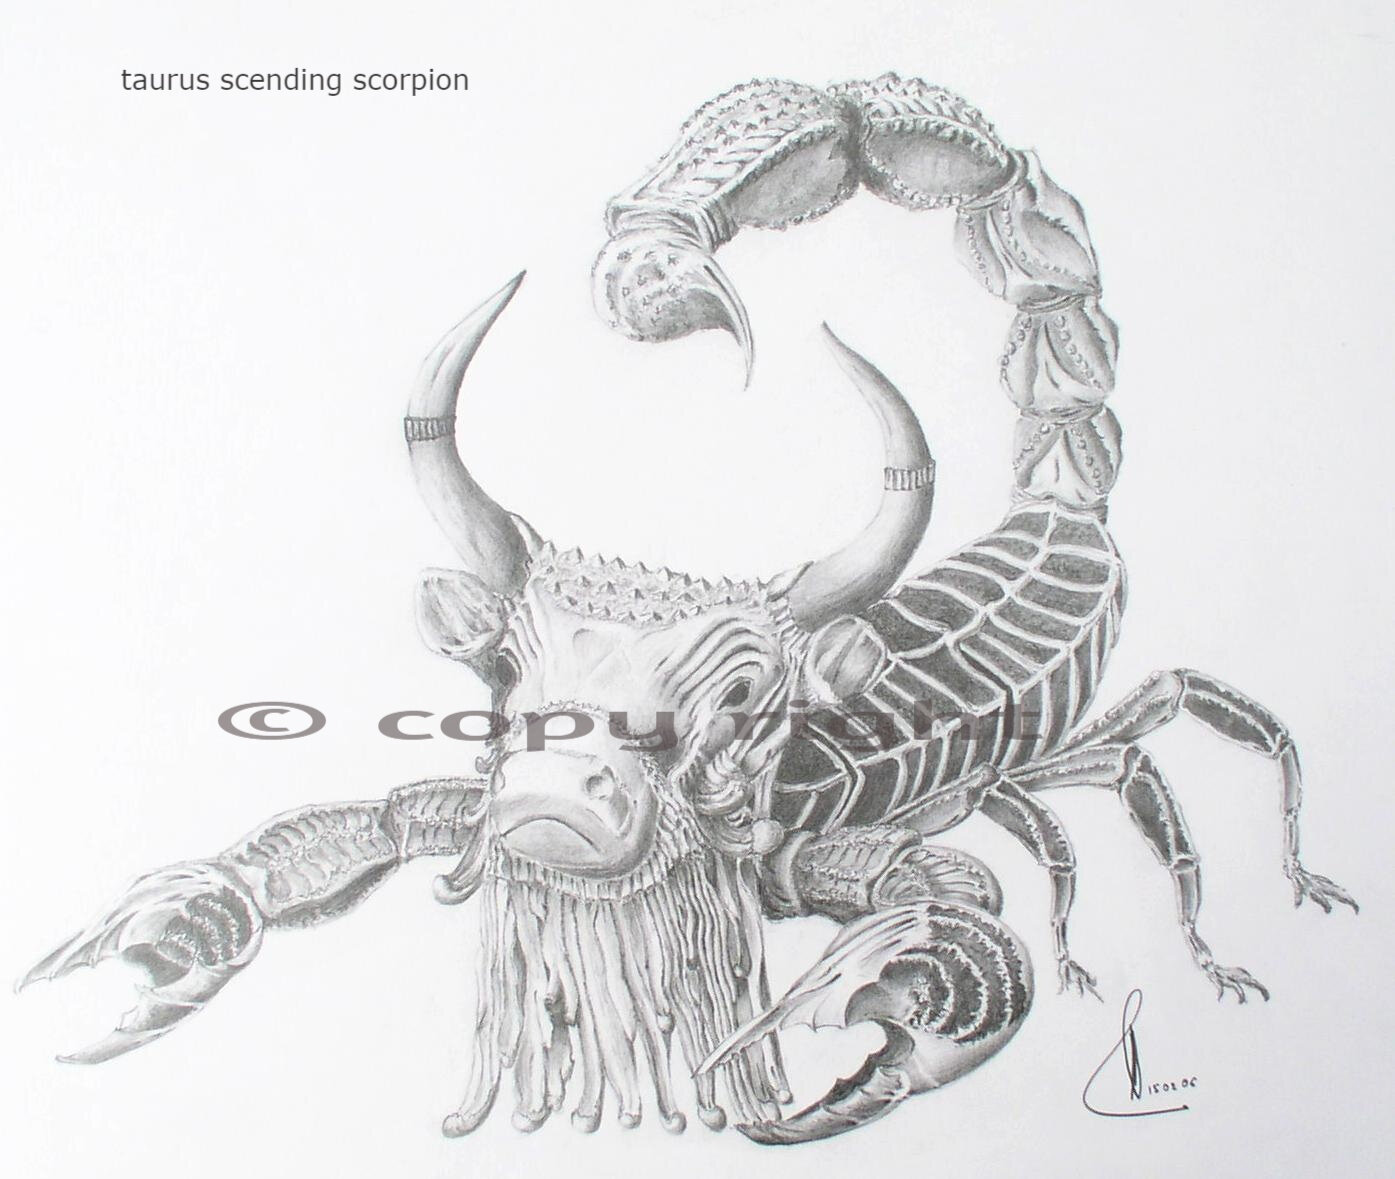 Taurus ascending scorpion